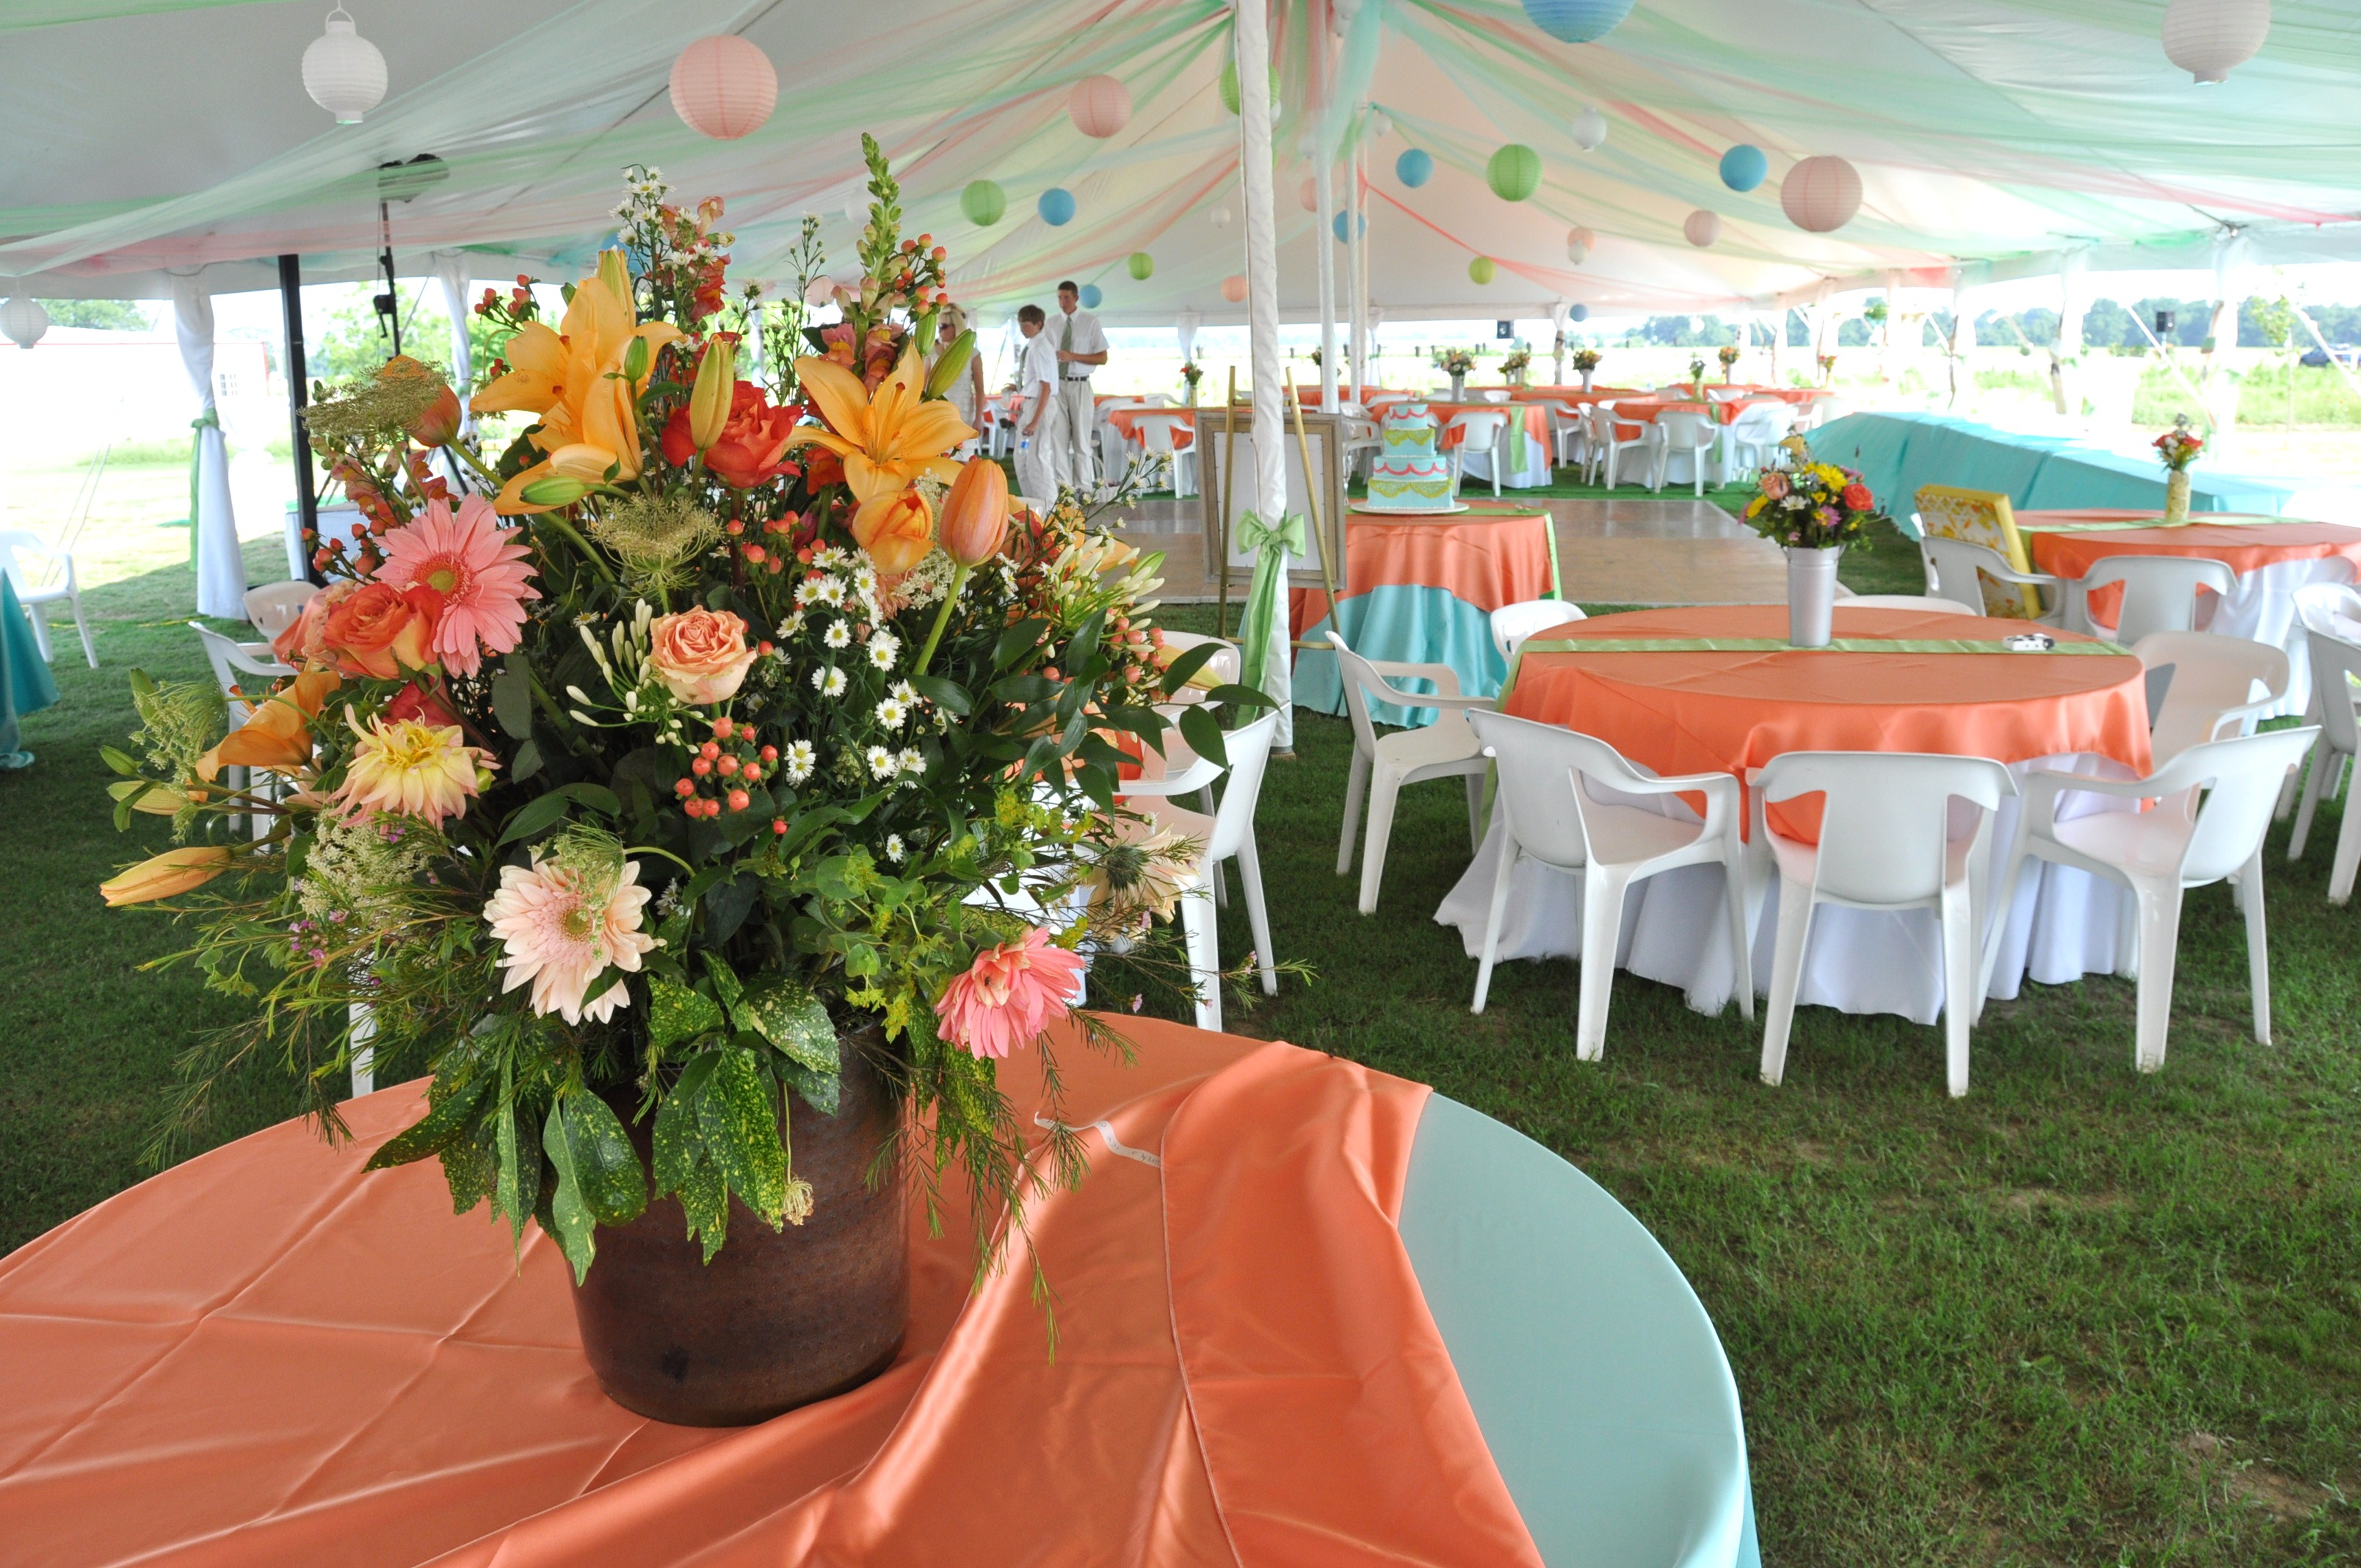 Rentals are available at Hamstead Acres for weddings and other events in Eastern North Carolina